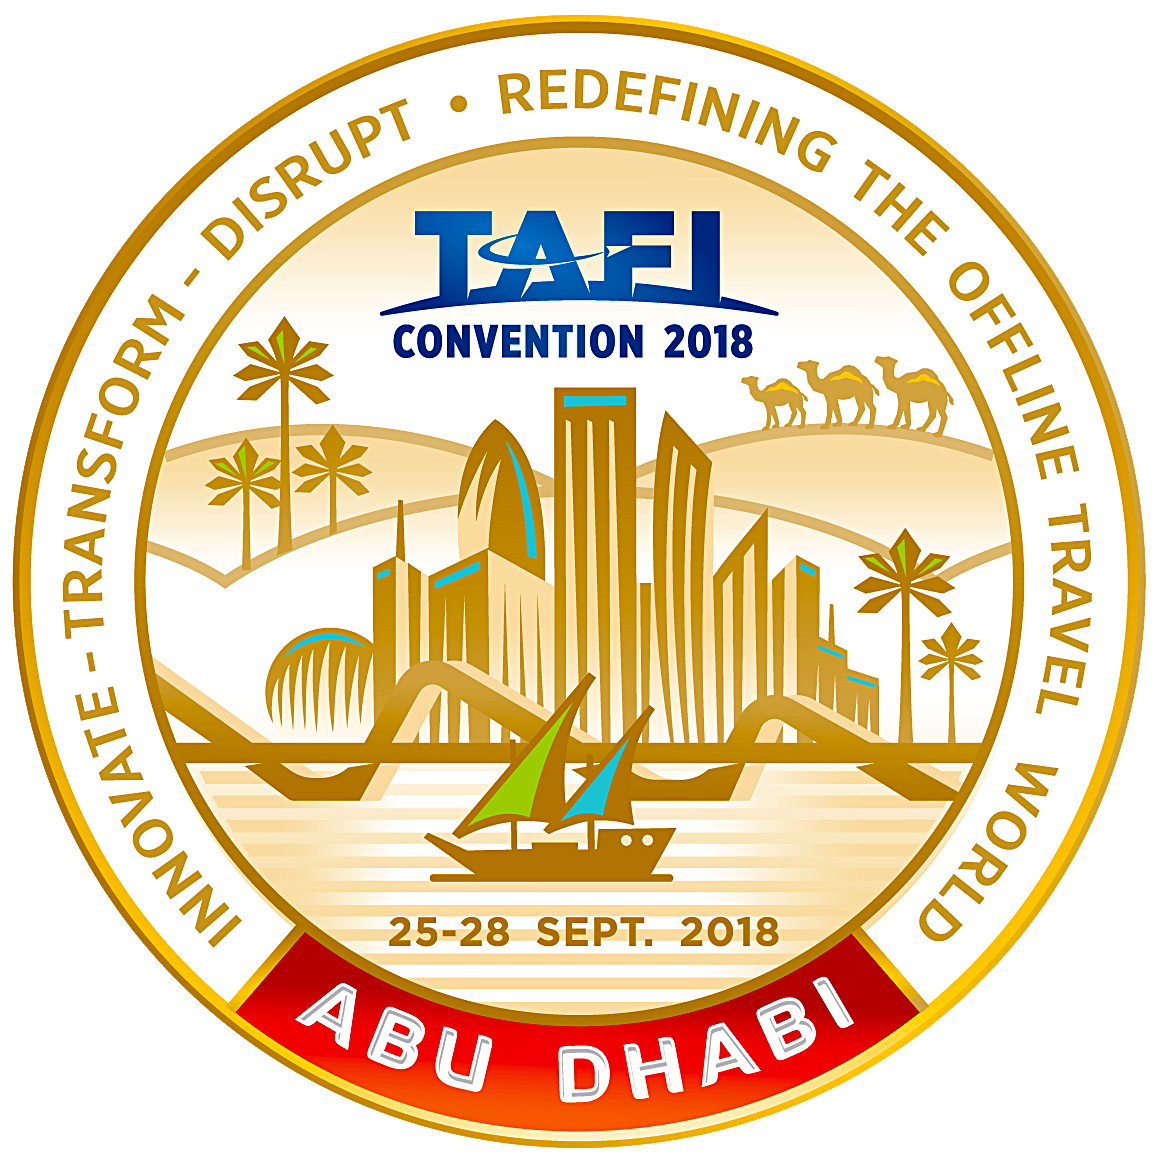 TAFI Convention 2018